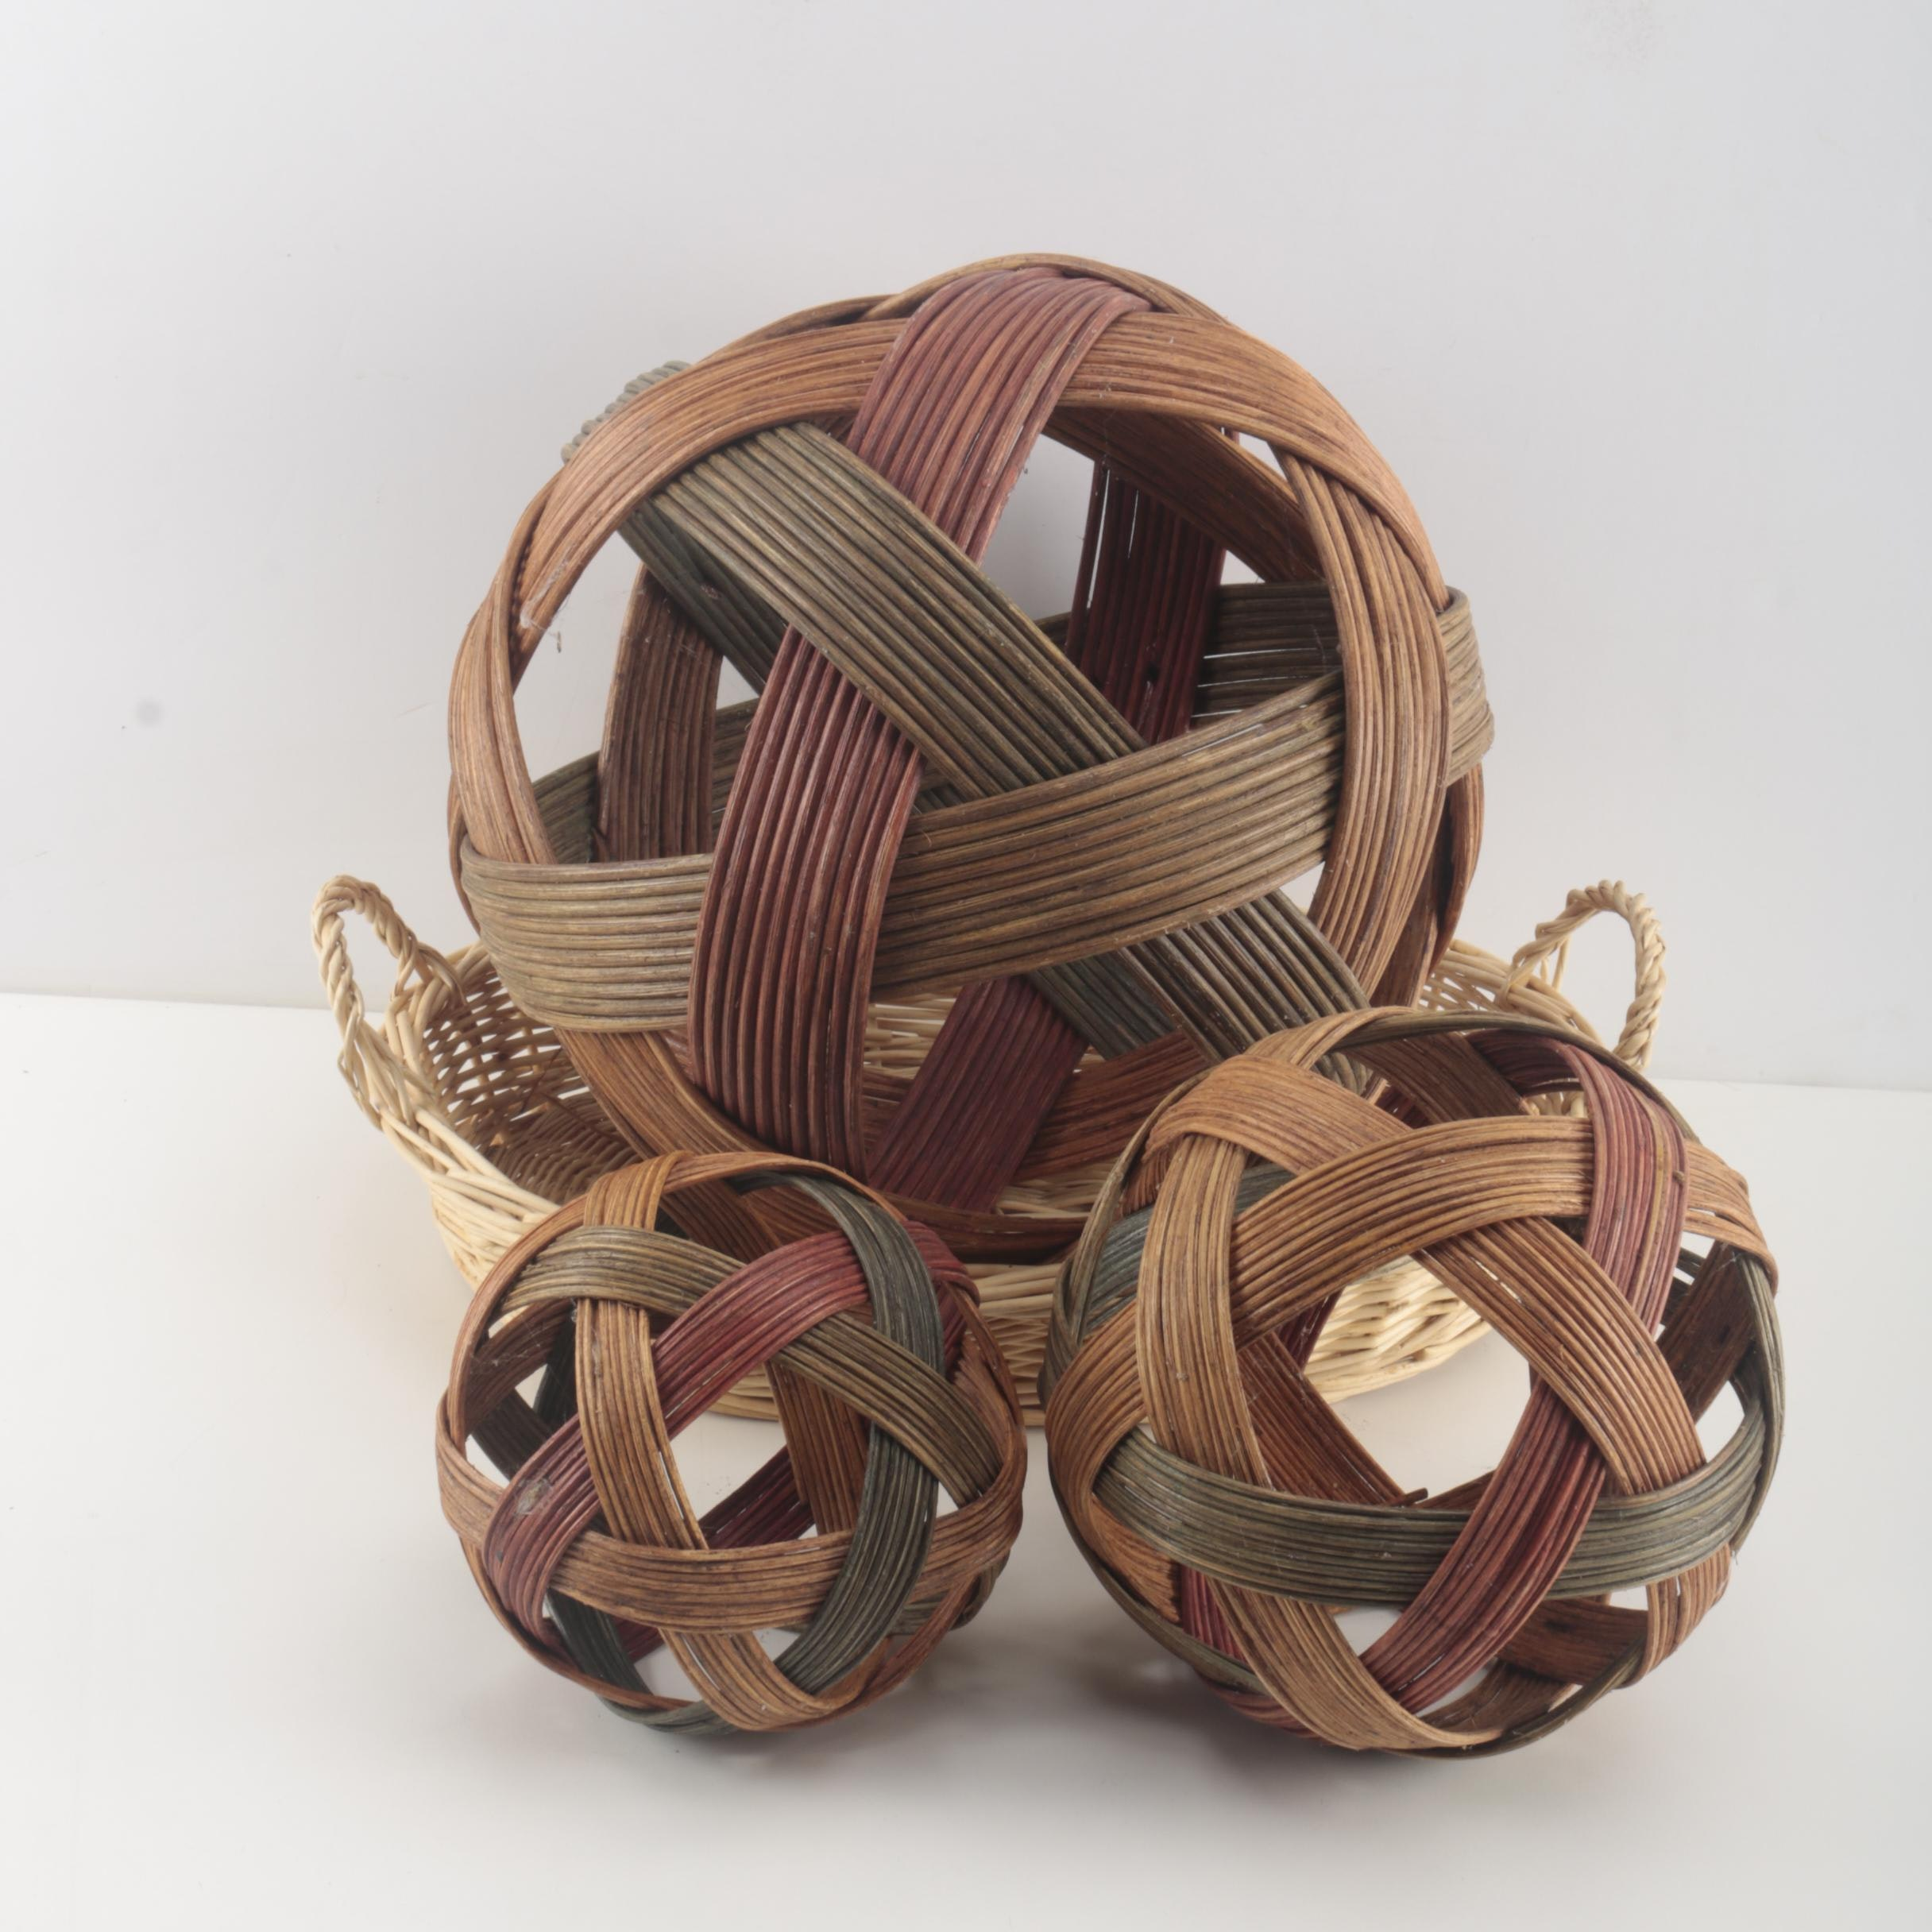 Wicker Basket With Decorative Woven Orbs